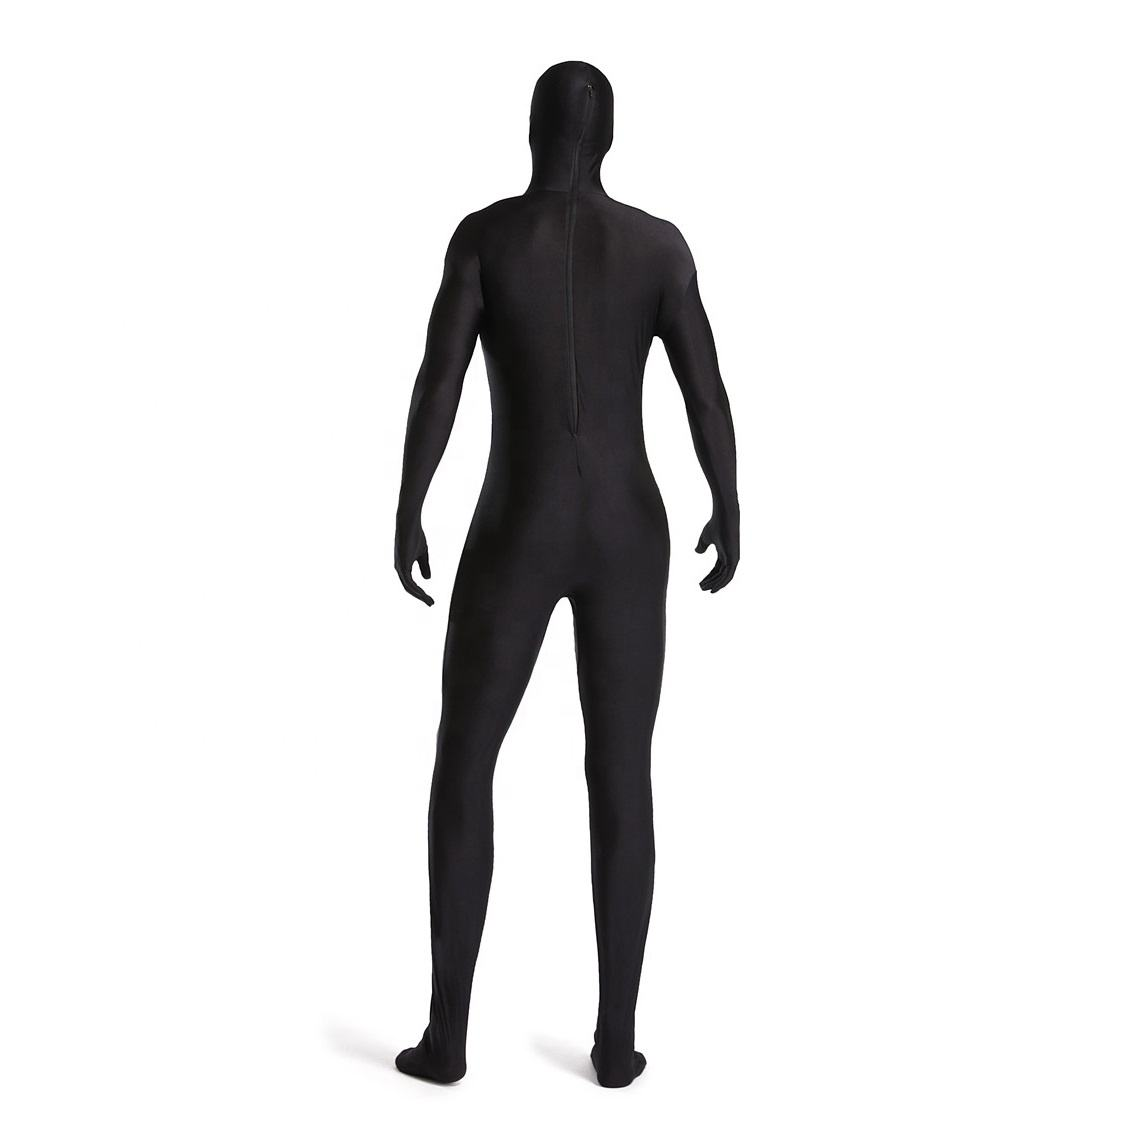 Custom Superhero Cosplay Costume Nylon Spandex Black Zentai Suit Male Spiderman Zentai Suit